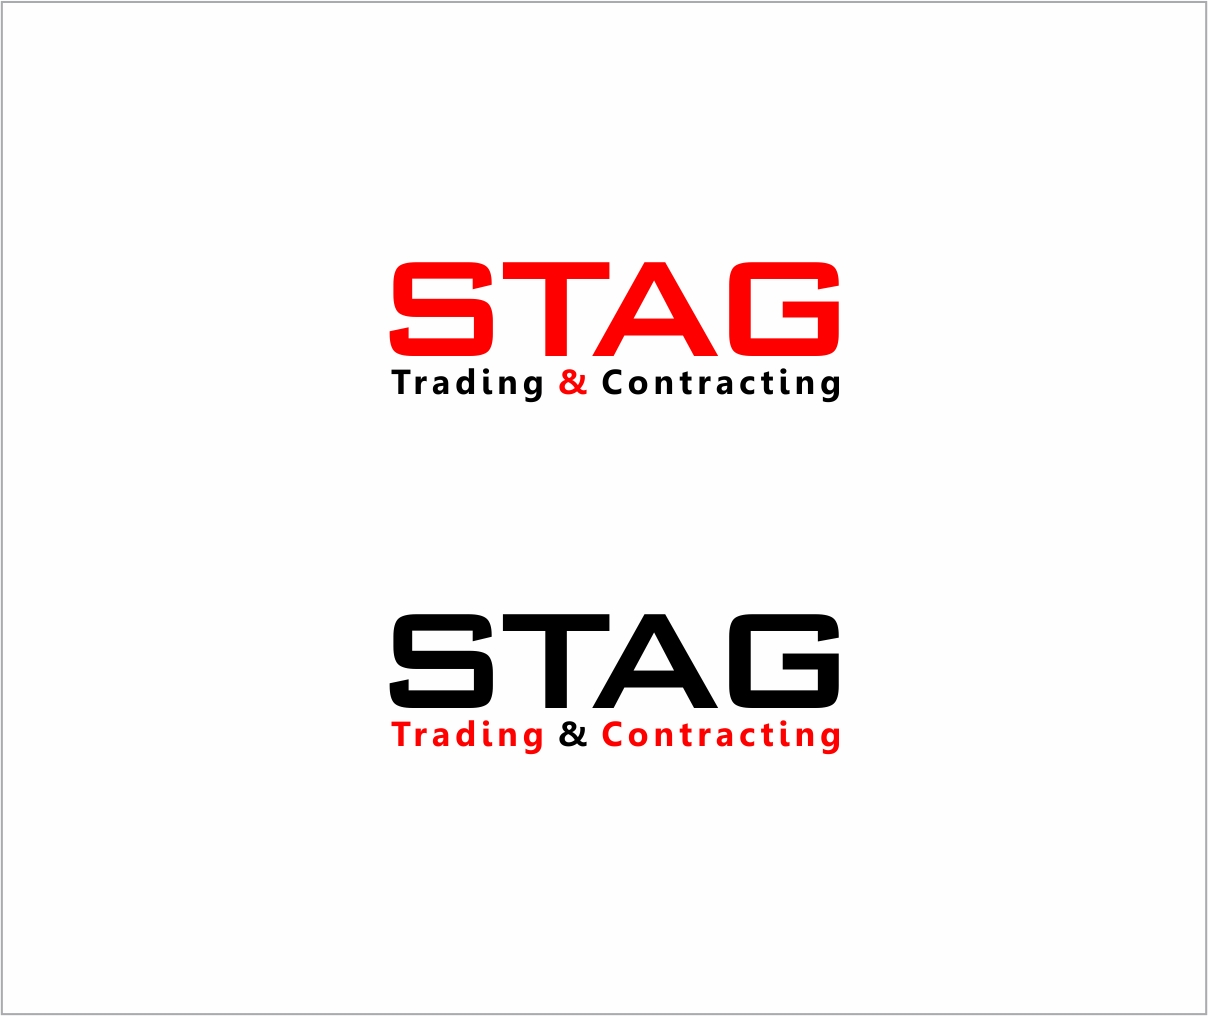 Logo Design by haidu - Entry No. 284 in the Logo Design Contest Captivating Logo Design for STAG Trading & Contracting.